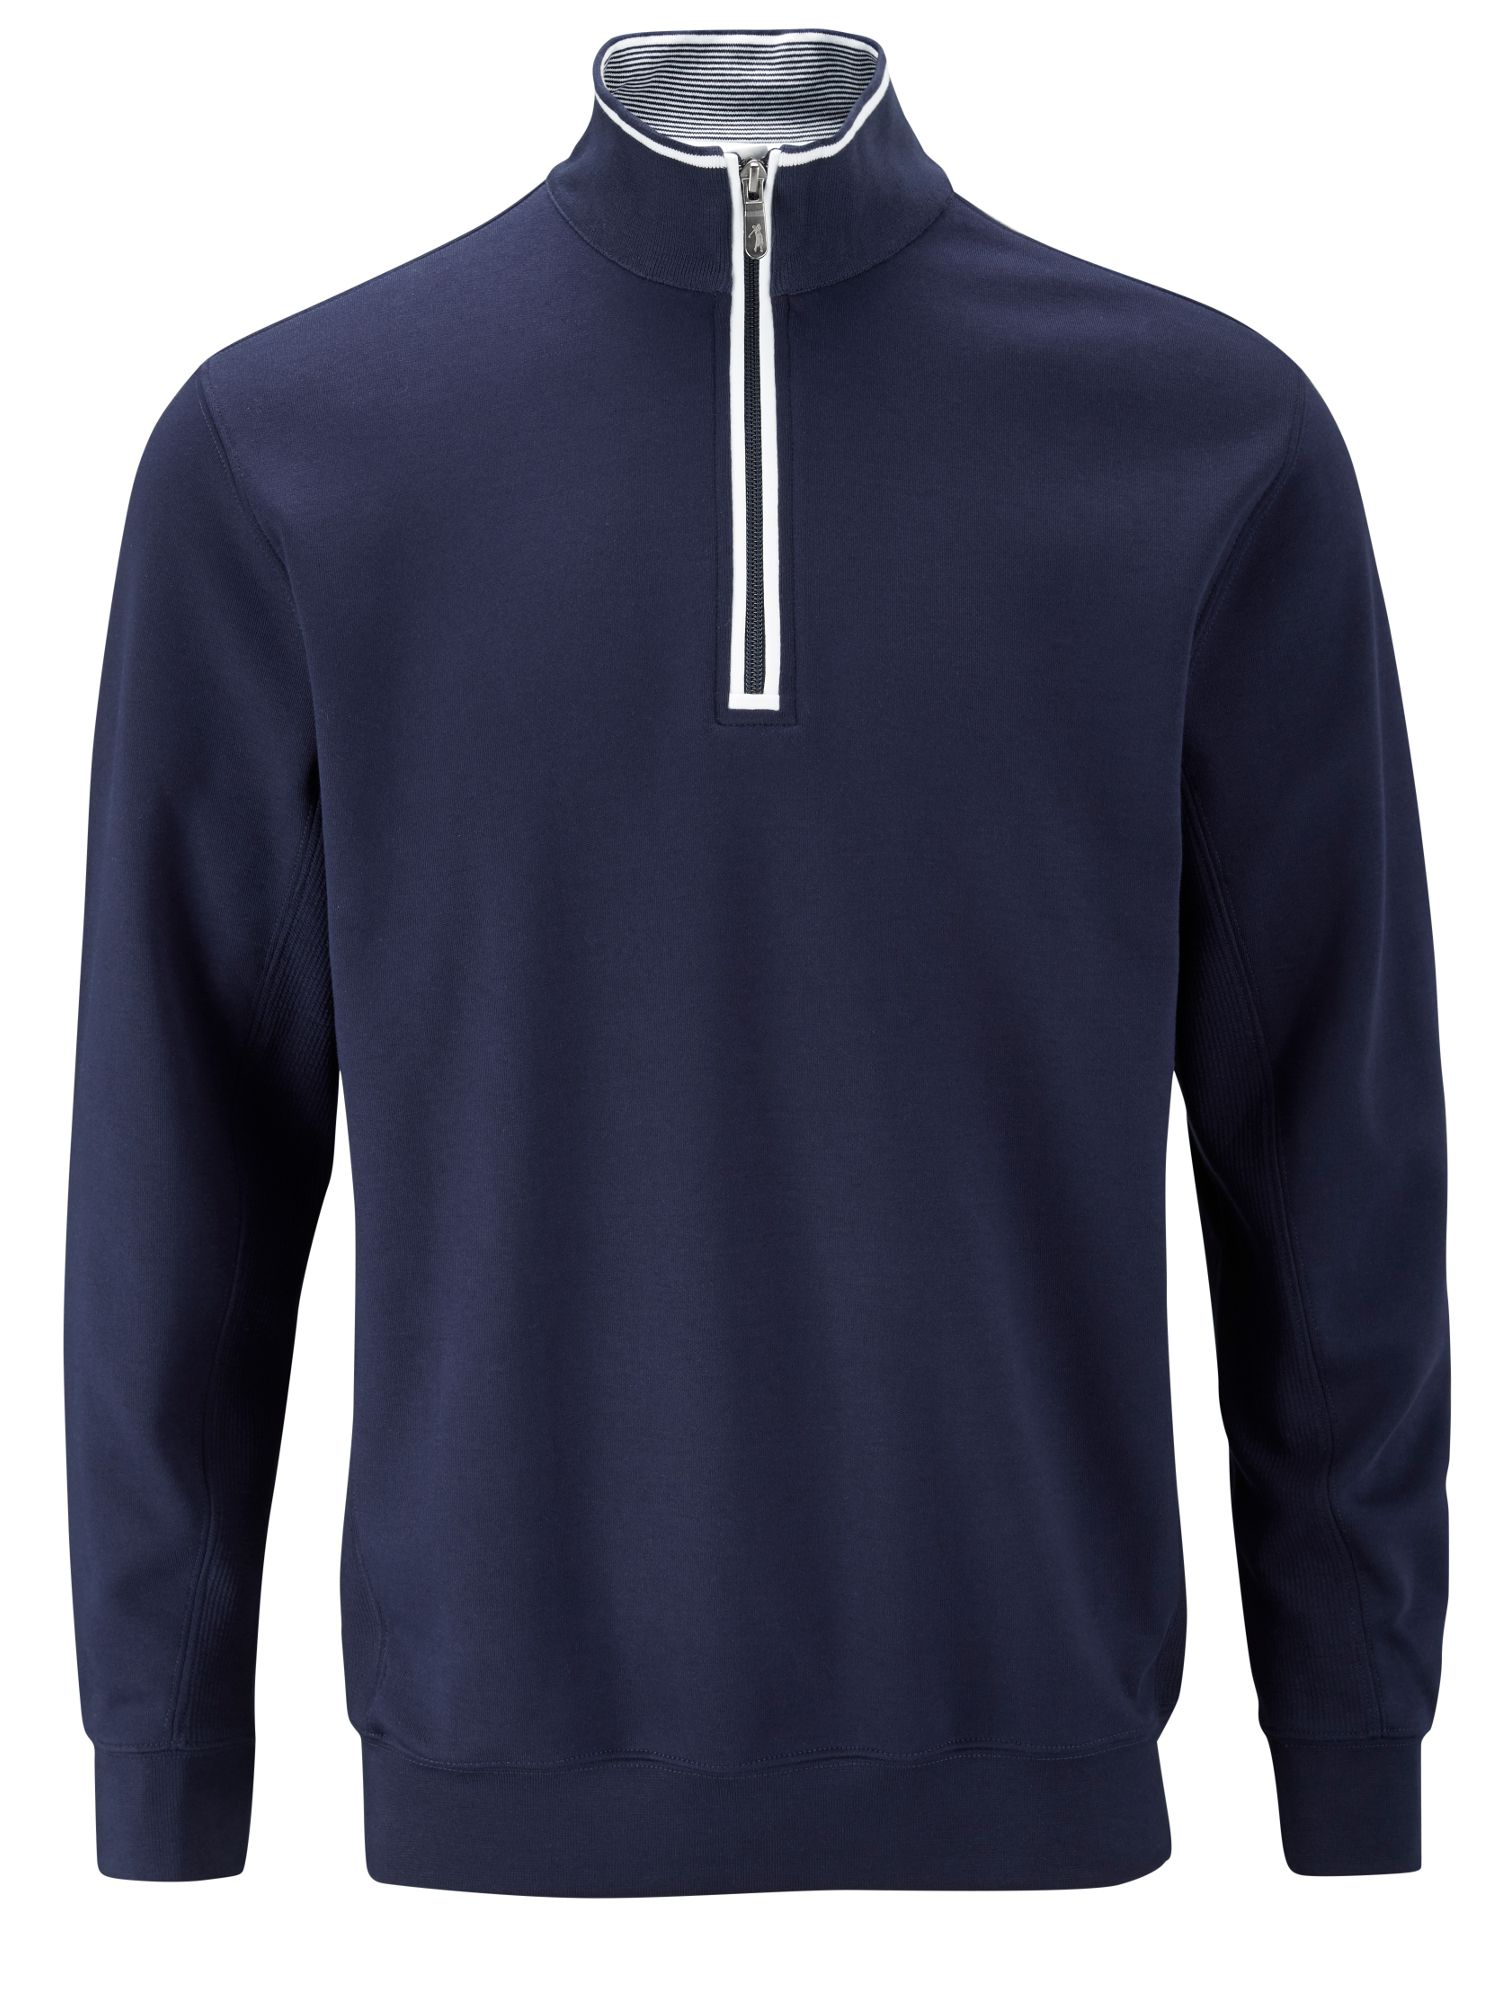 1/4 zip leaderboard sweater